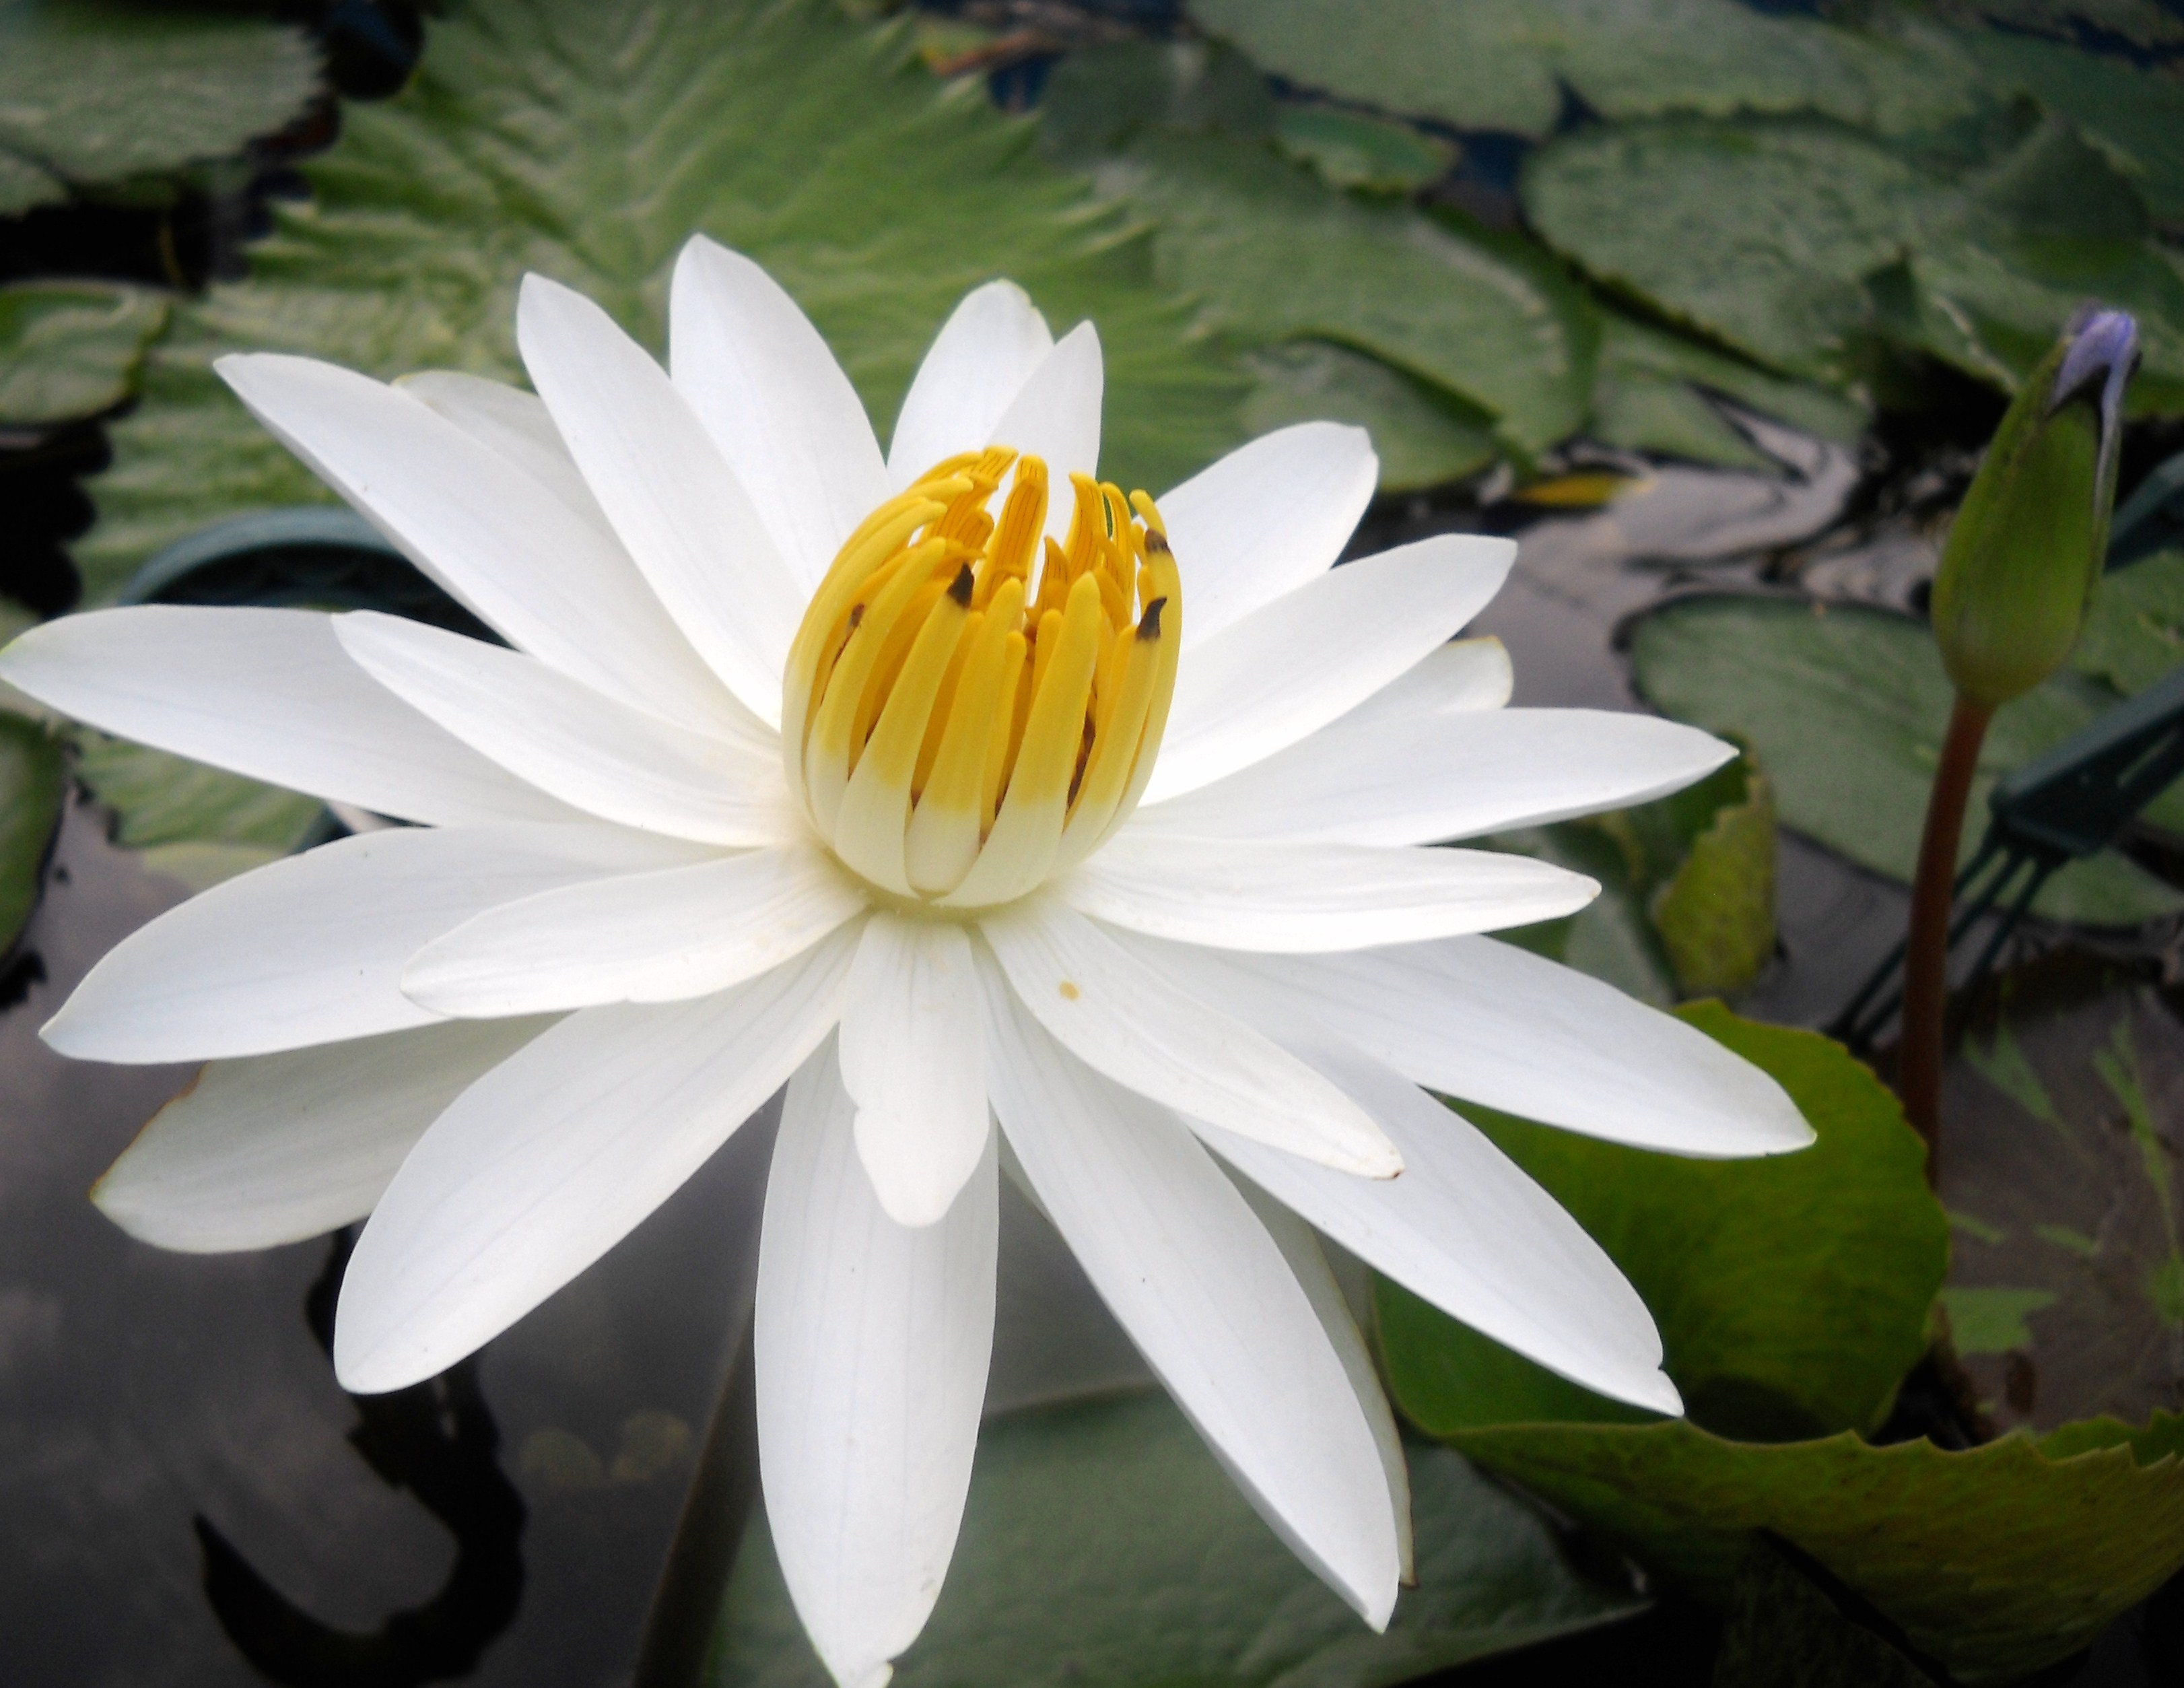 Tropical vs hardy water lilies backyard getaway although both hardy tropical water lilies are available in sizes ranging from dwarf to large the tropical lily pads tend to be larger than izmirmasajfo Images